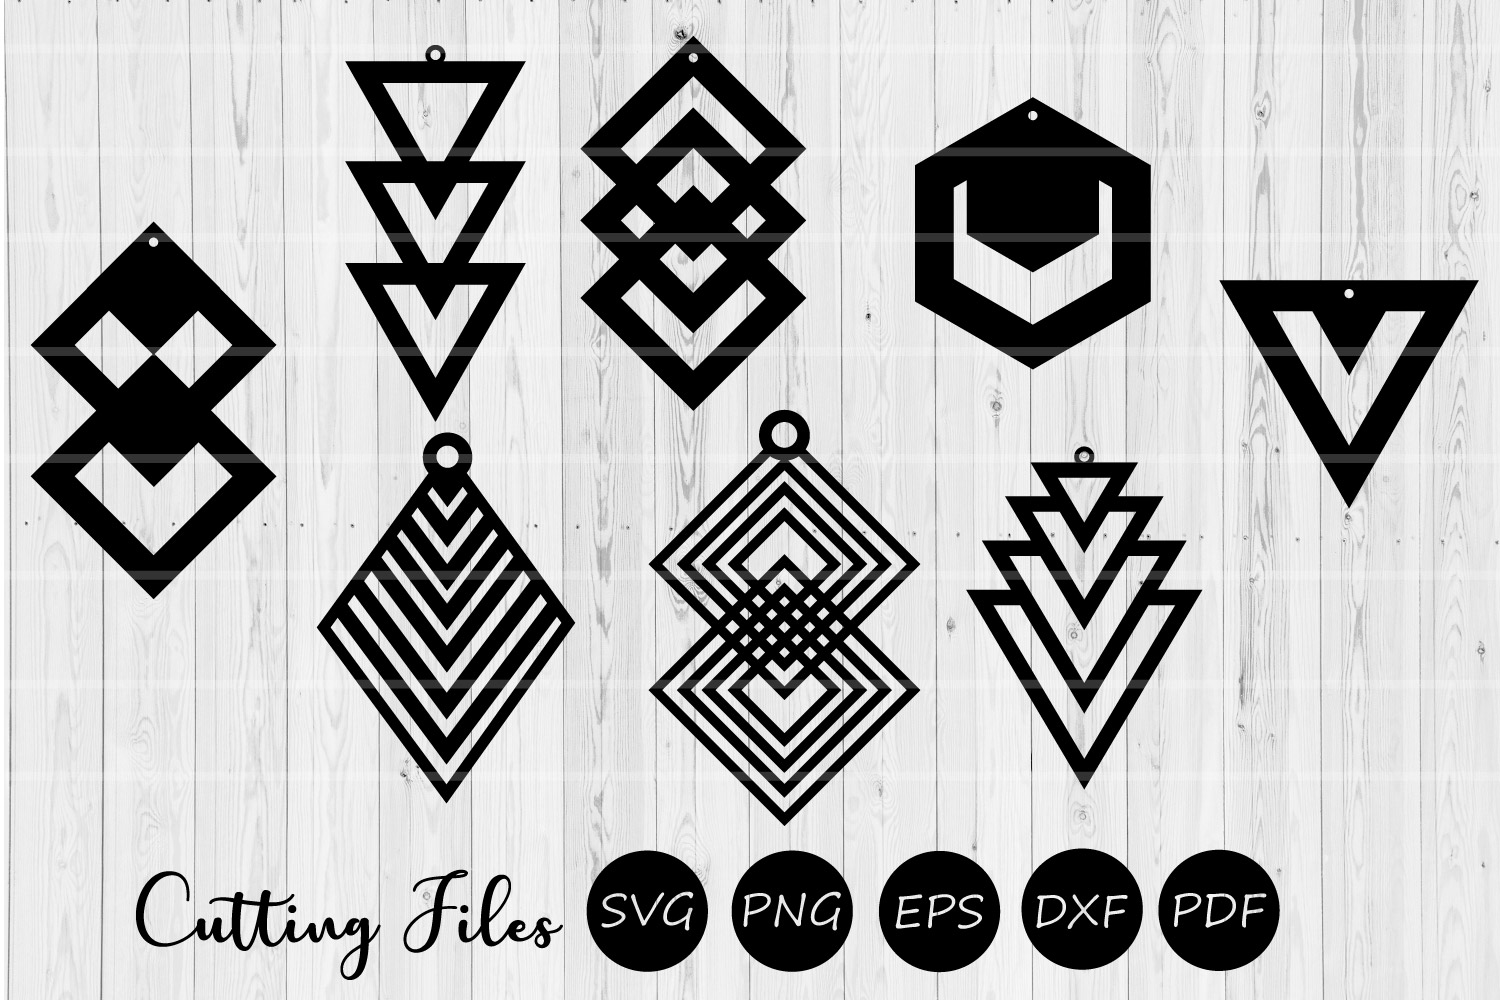 Download Free Geometric Earrings Graphic By Hd Art Workshop Creative Fabrica for Cricut Explore, Silhouette and other cutting machines.